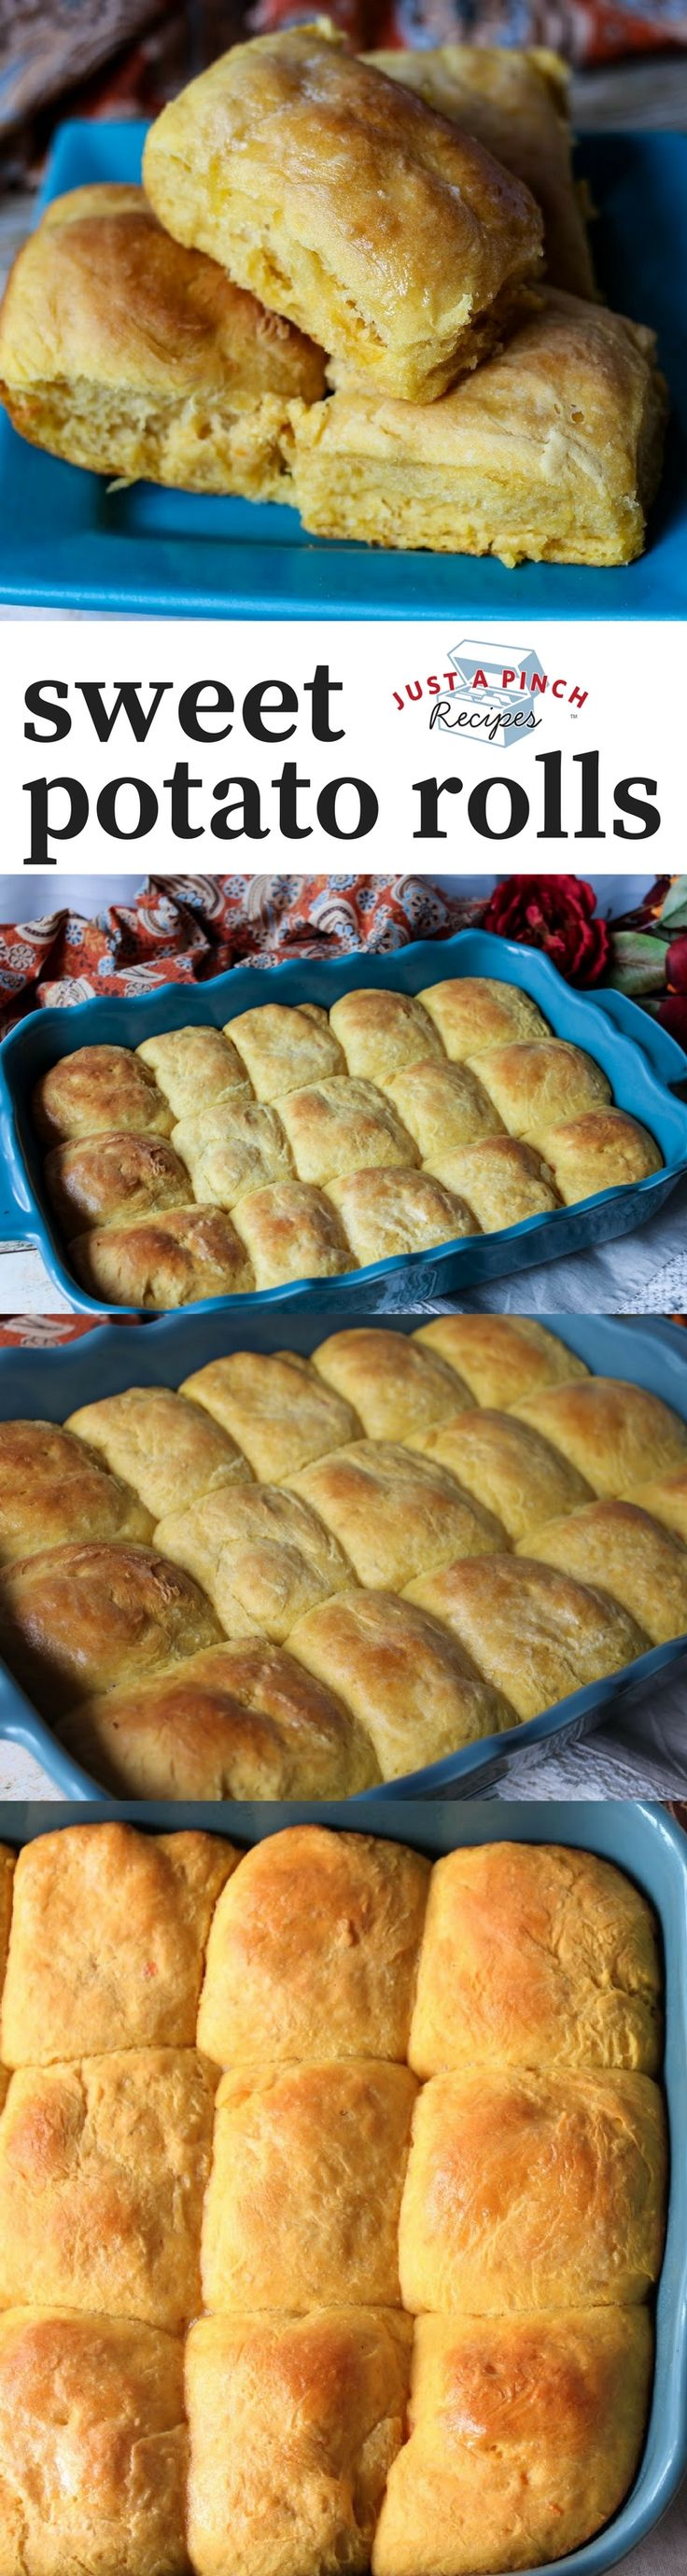 sweet potato dinner rolls recipe that's easy and delicious!